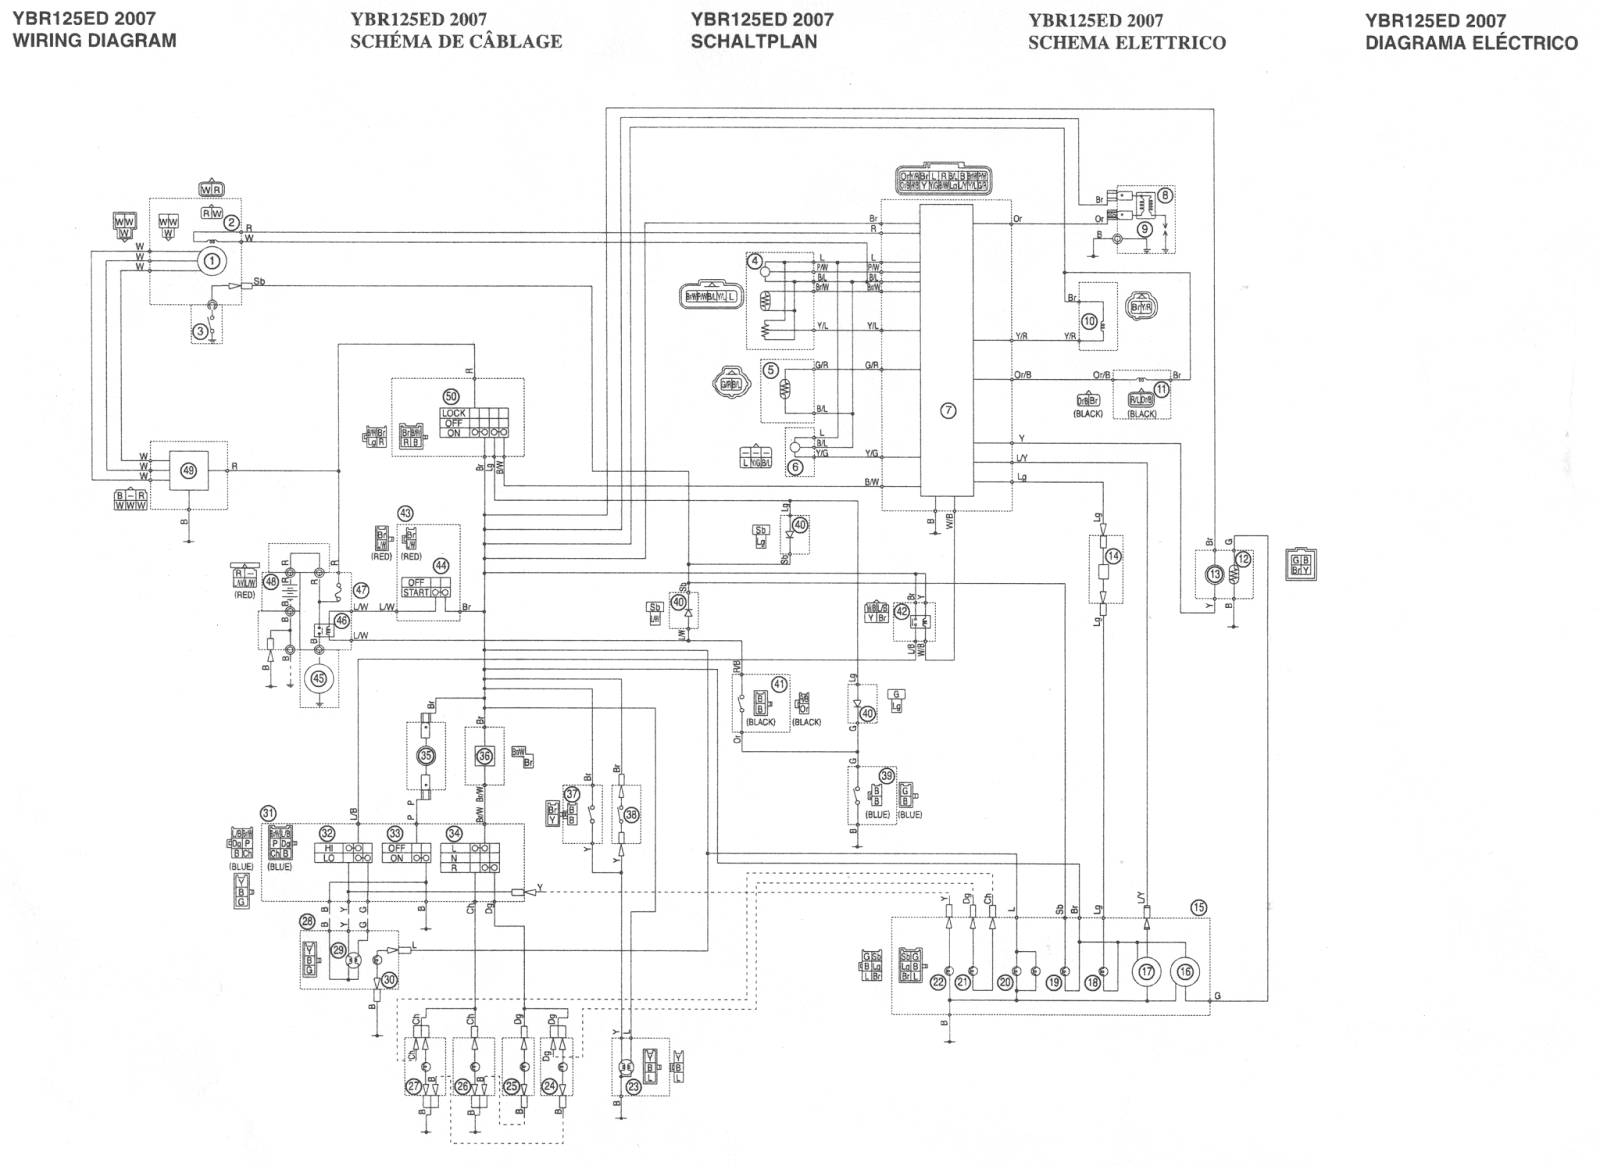 schema yamaha ybr 125 owner blog yamaha ybr 125 electrical system 1980 yamaha xt 250 wiring diagram at reclaimingppi.co